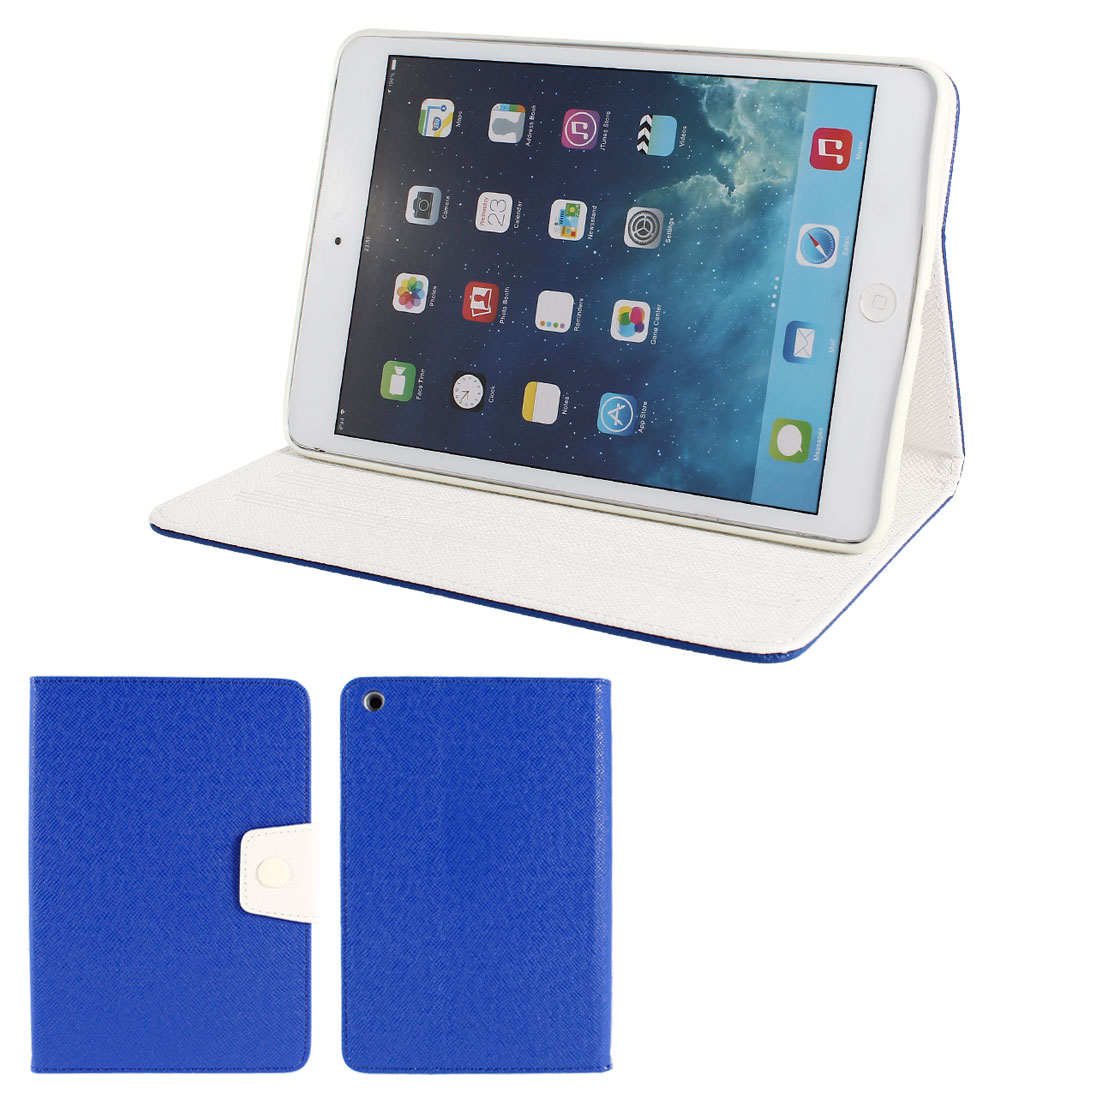 Blue PU Leather White Silicone Holder Folio Flip Stand Case Cover for iPad Mini